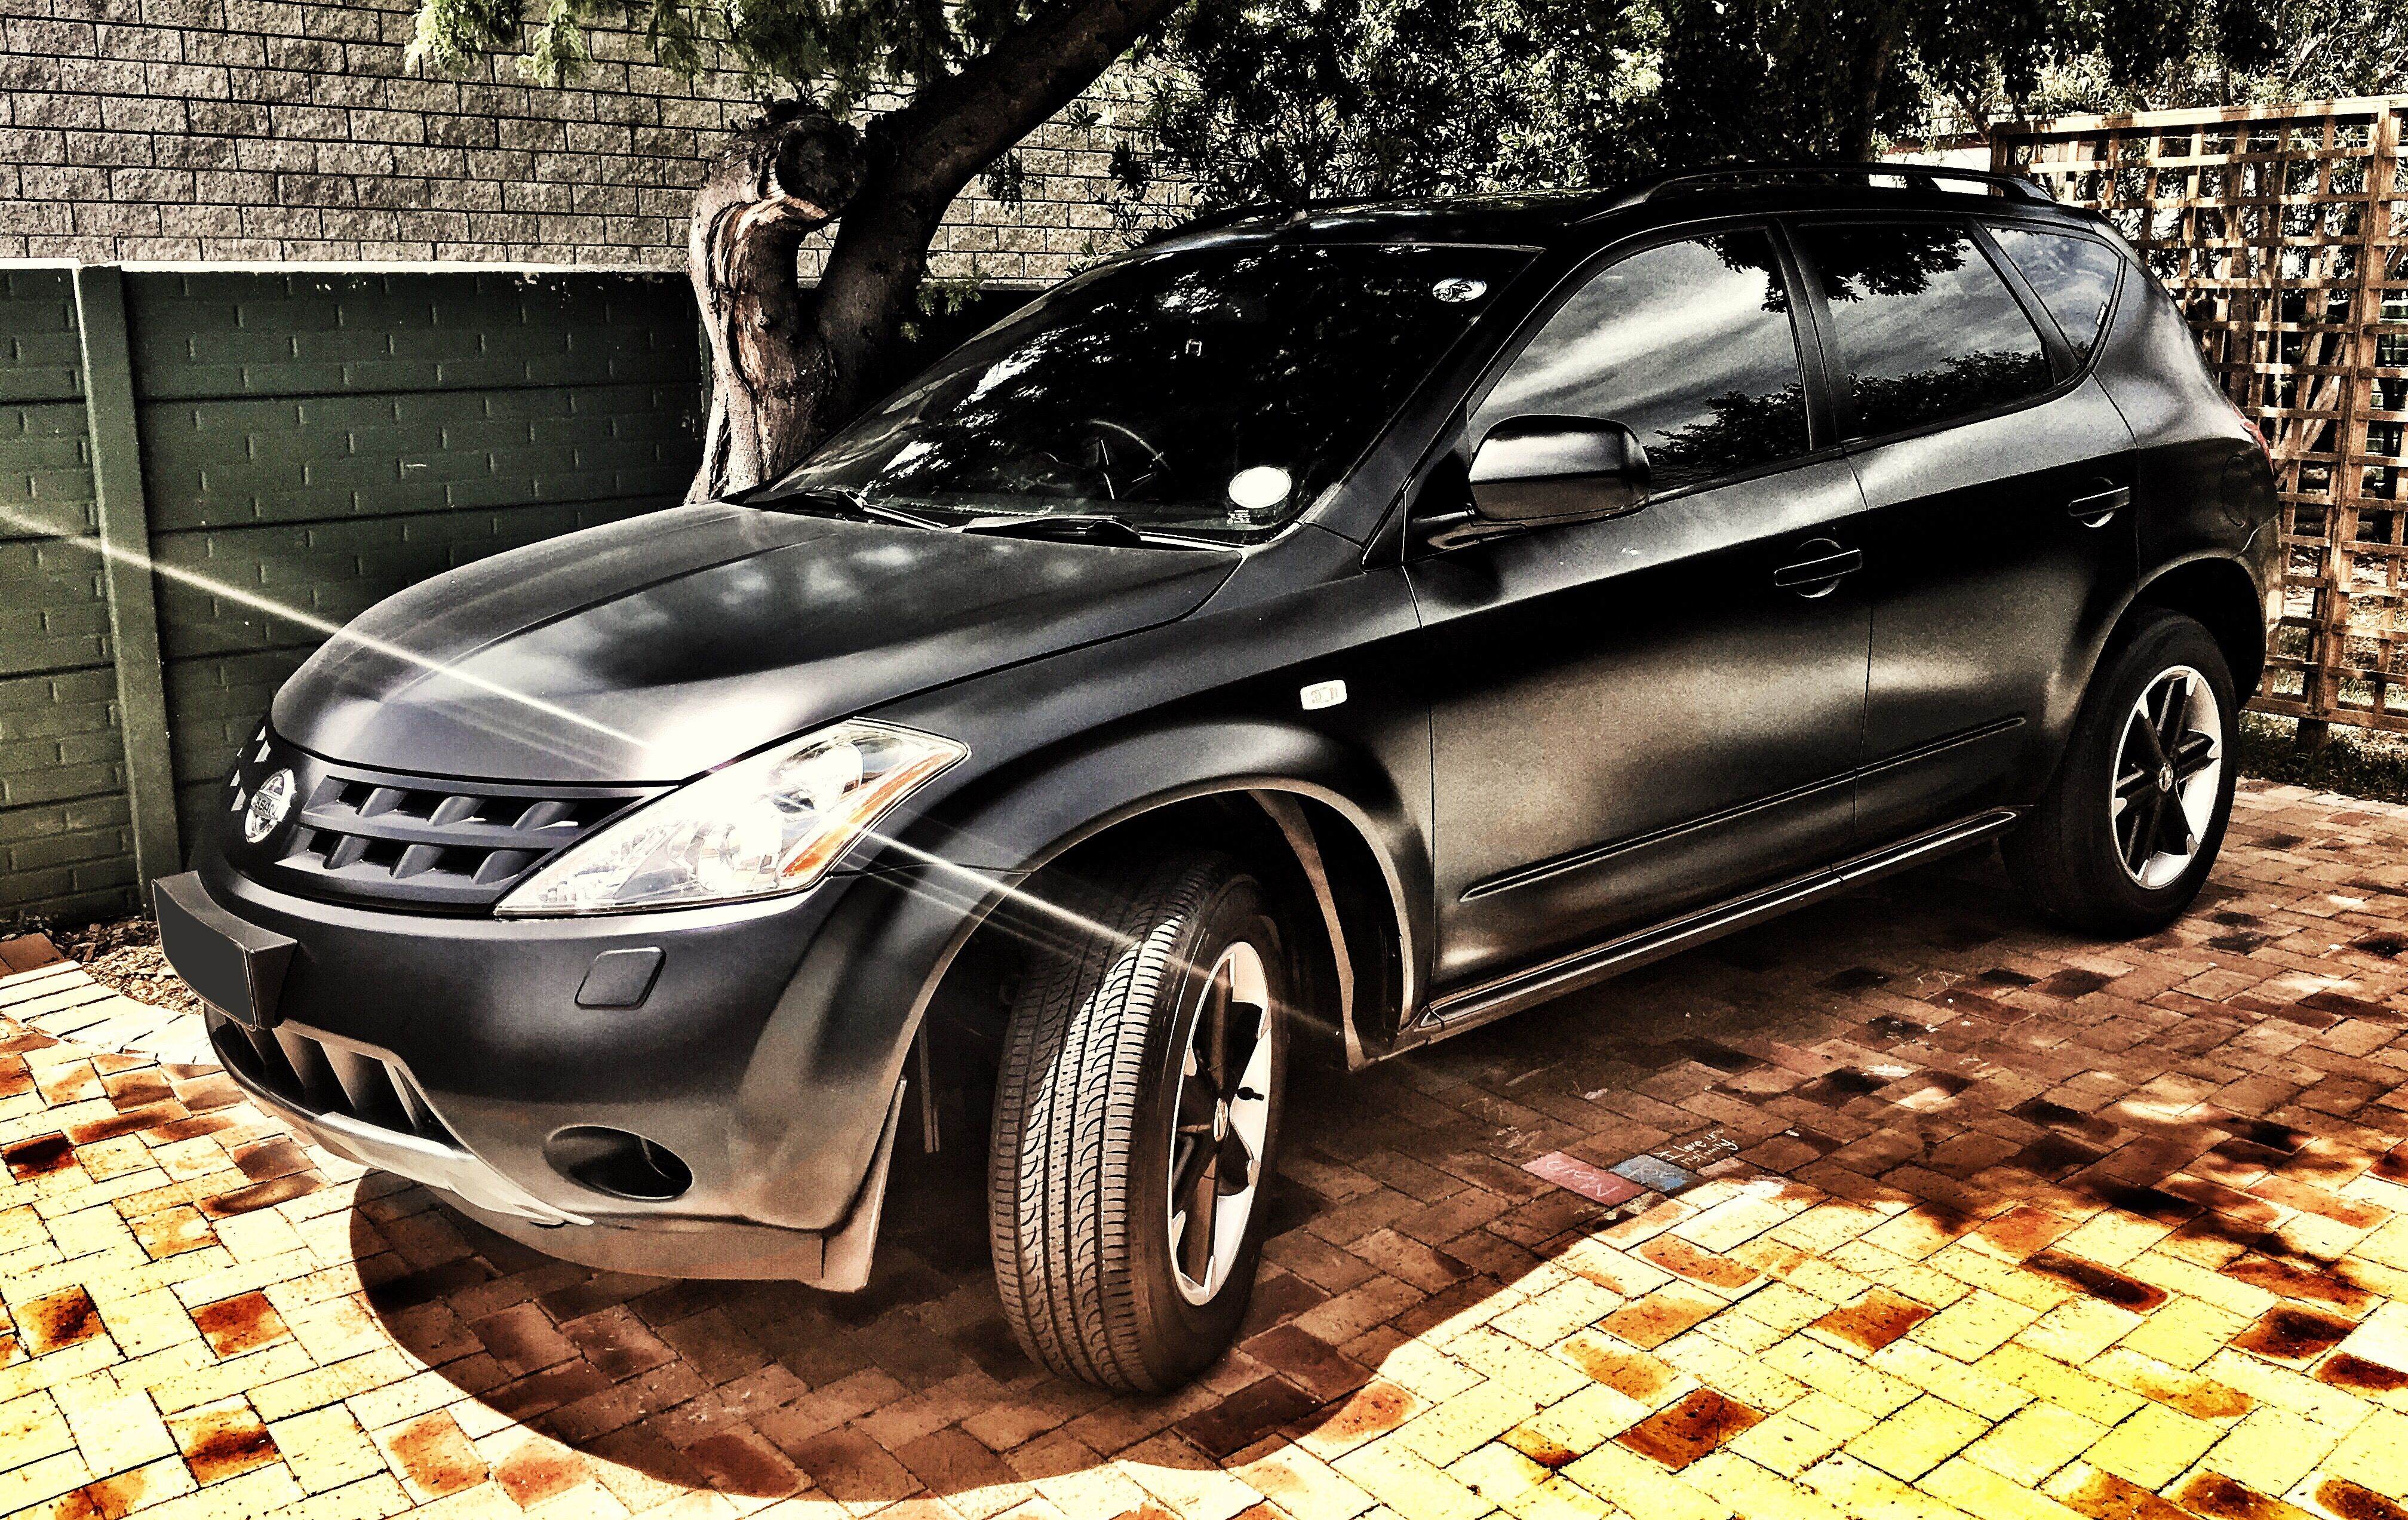 pictures convertible murano and nissan information cabriolet specs for sale